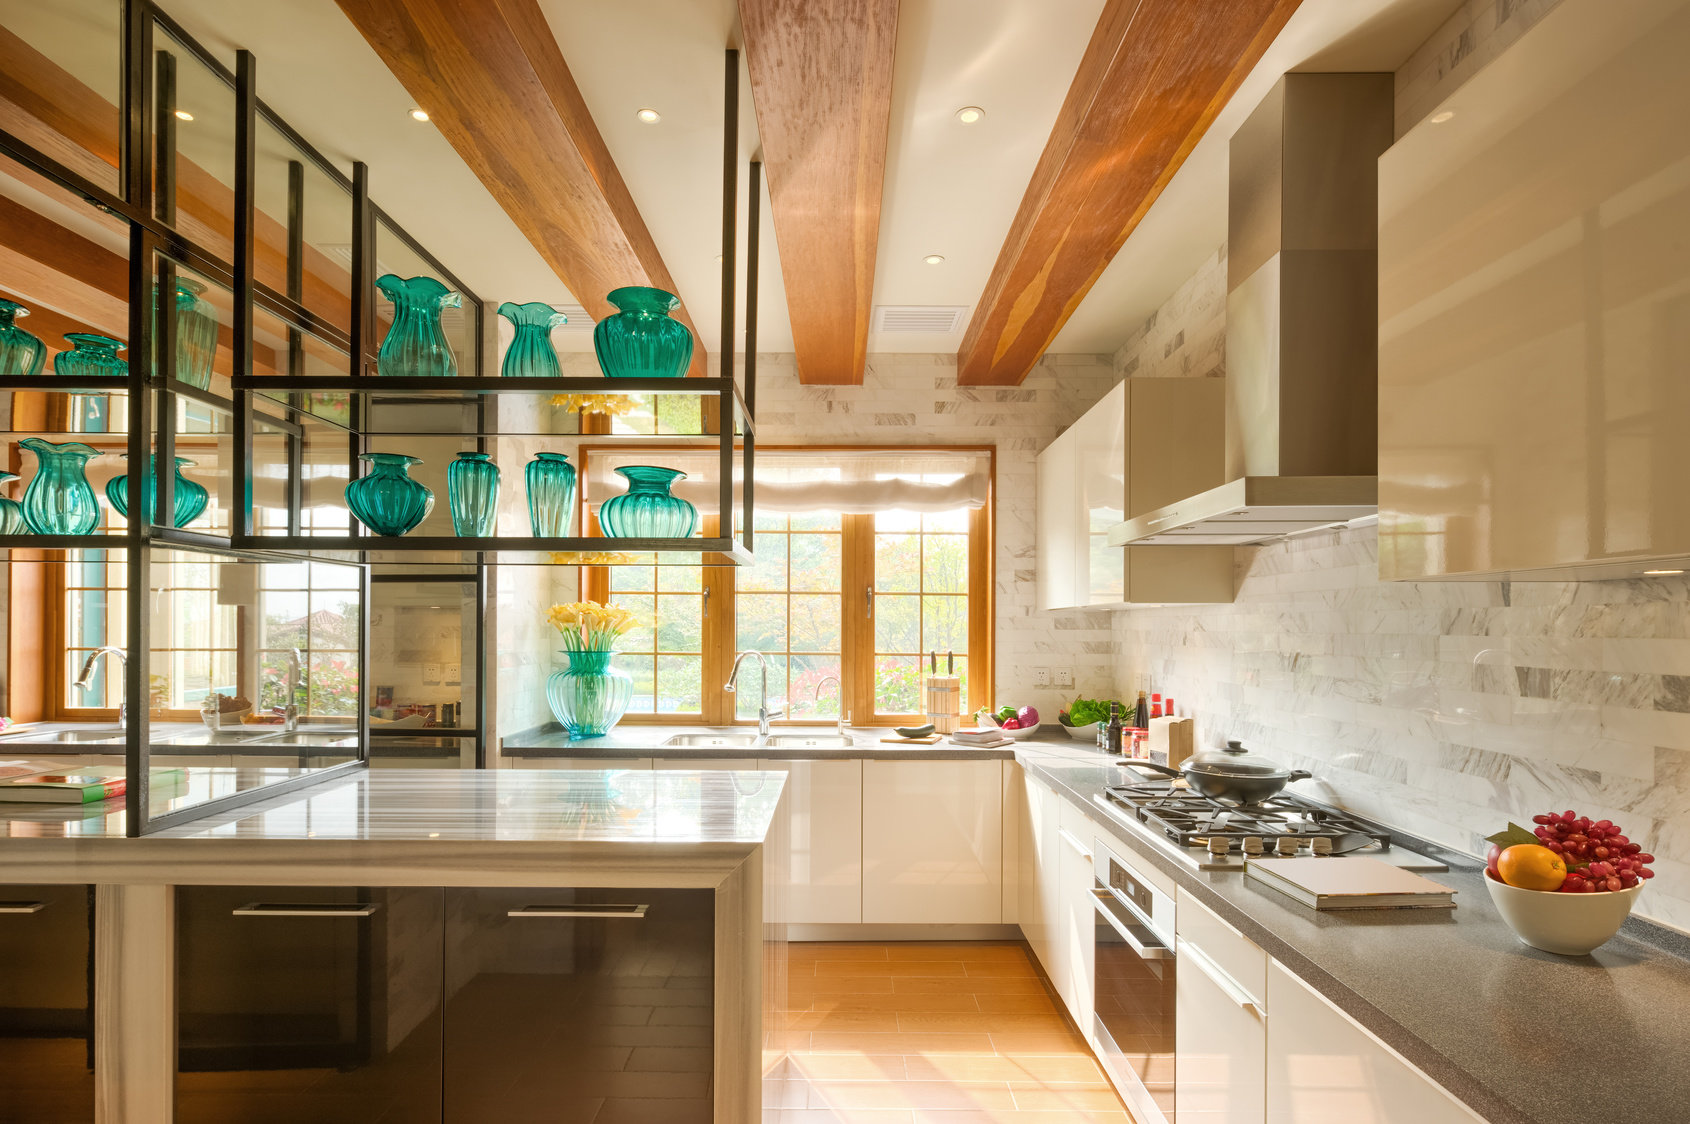 How to Sell Your Home With High ROI Kitchen Improvements